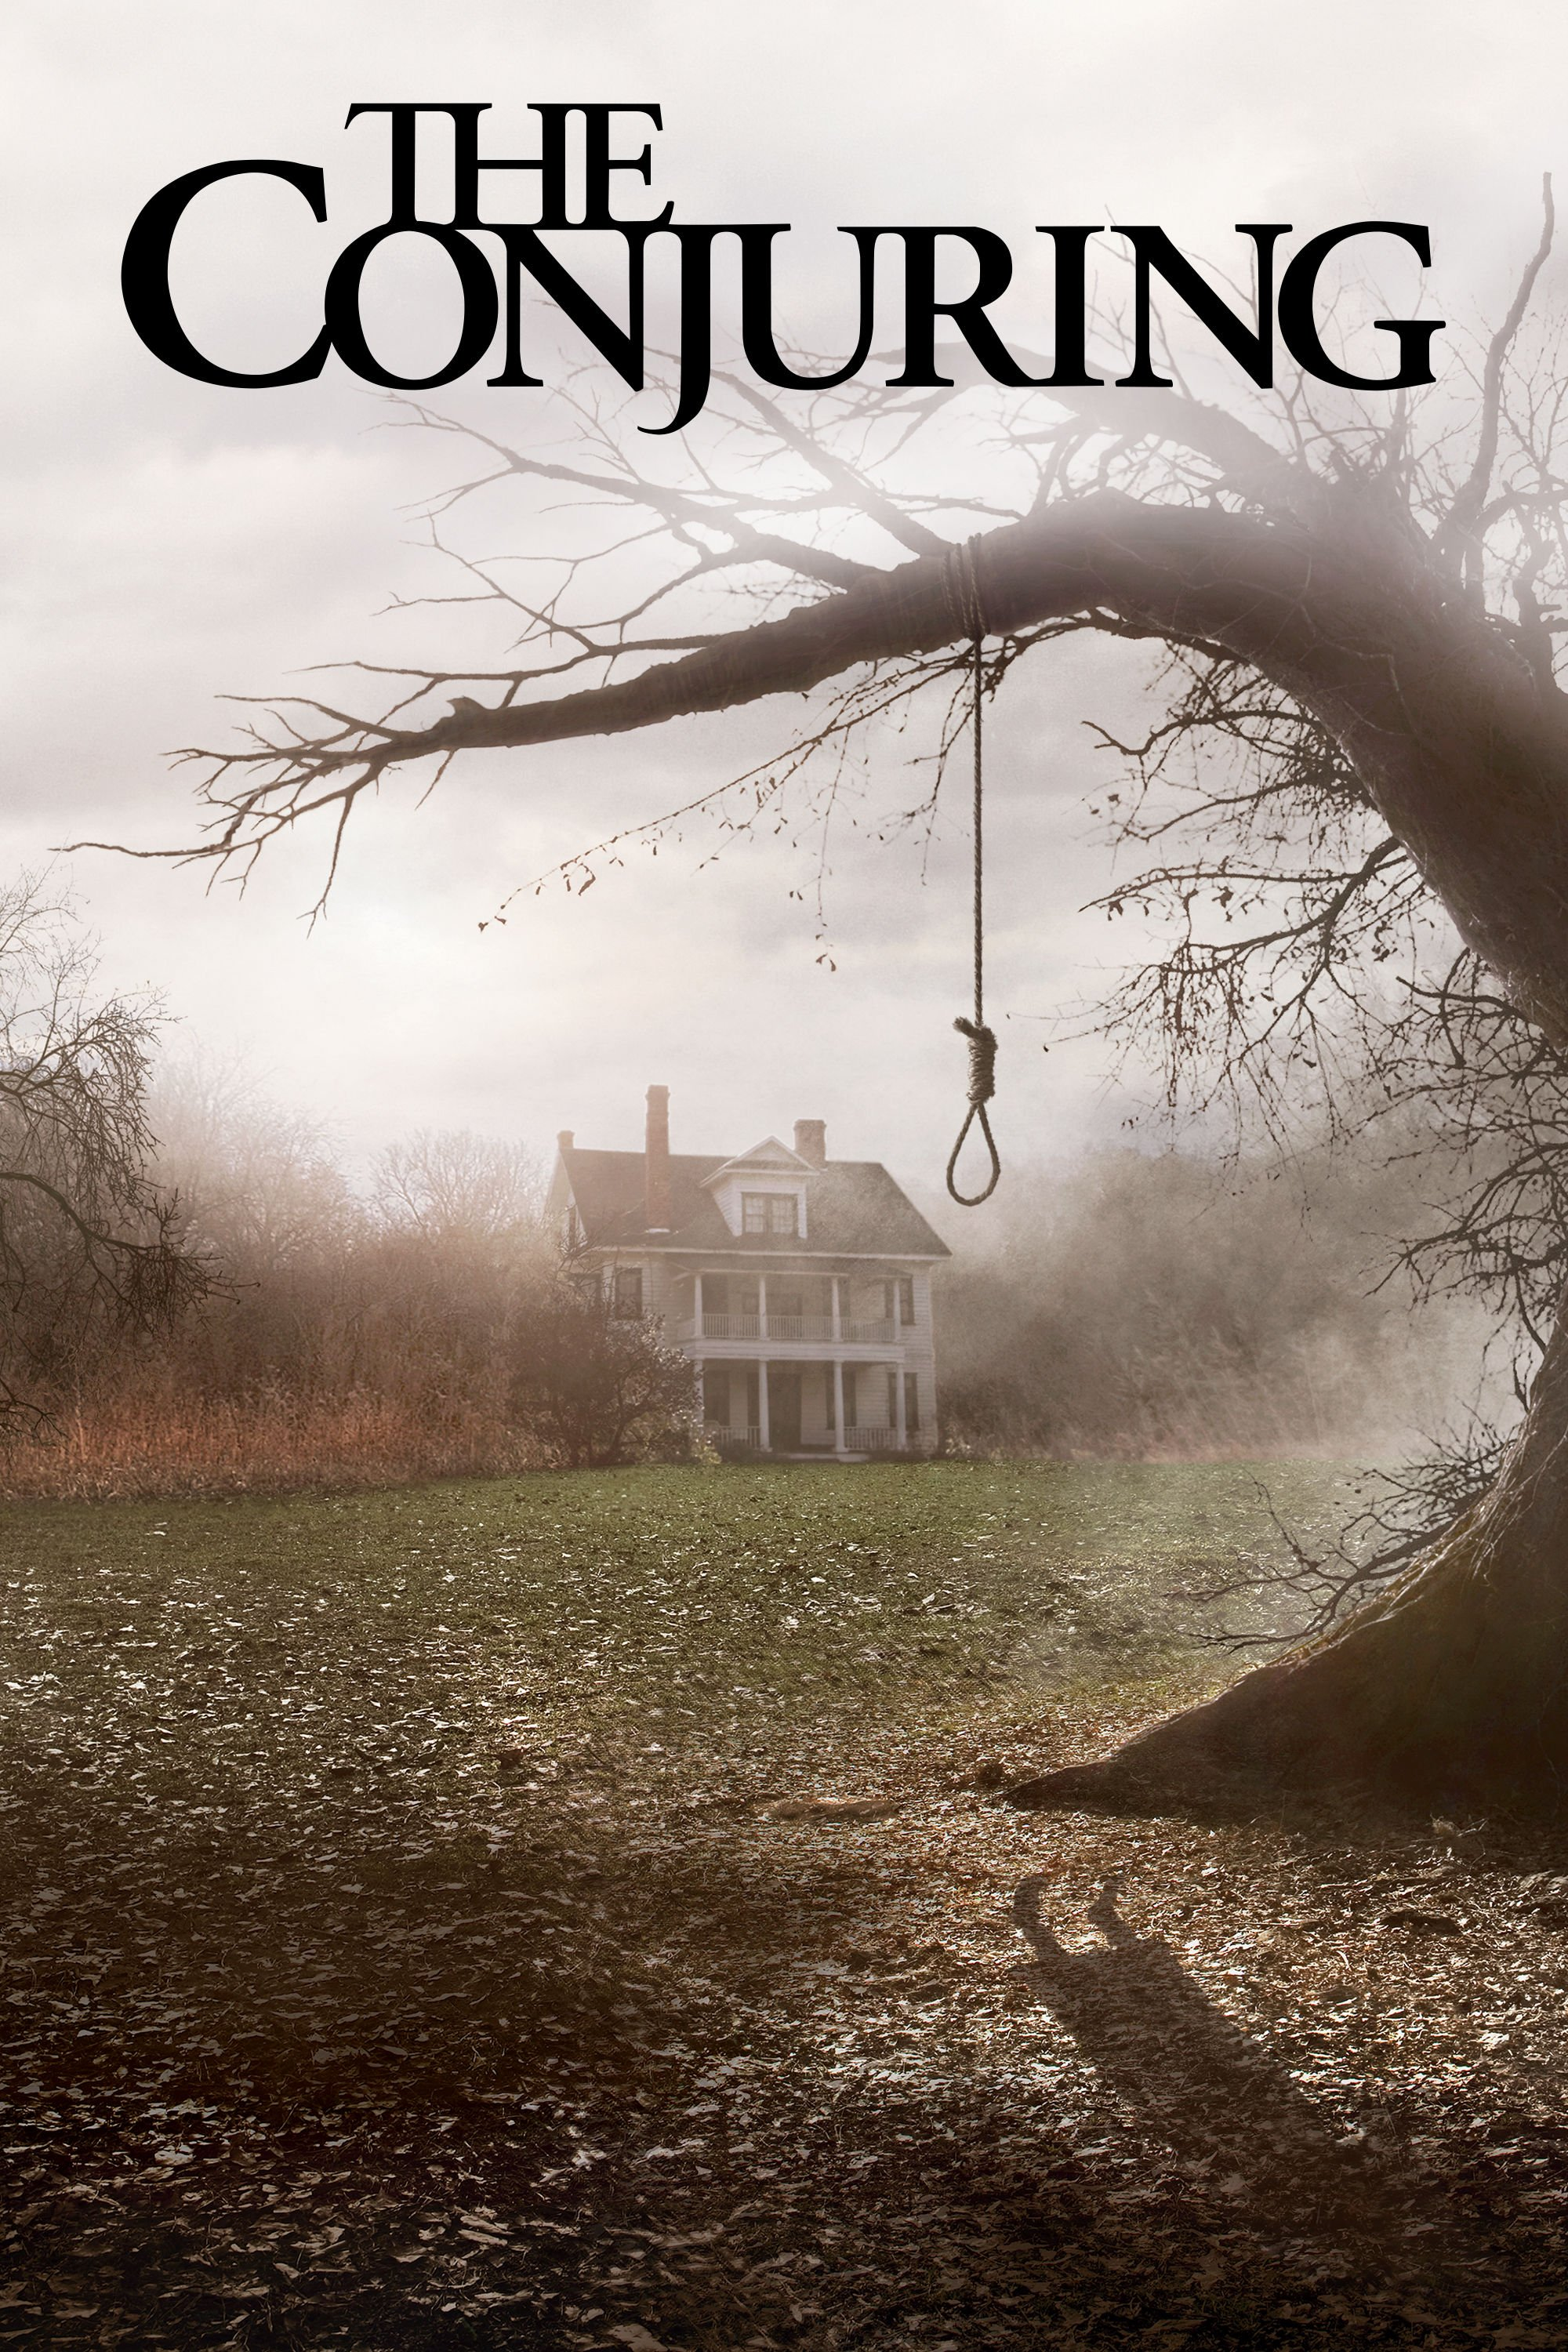 conjuring-filming-locations-itunes-dvd-poster